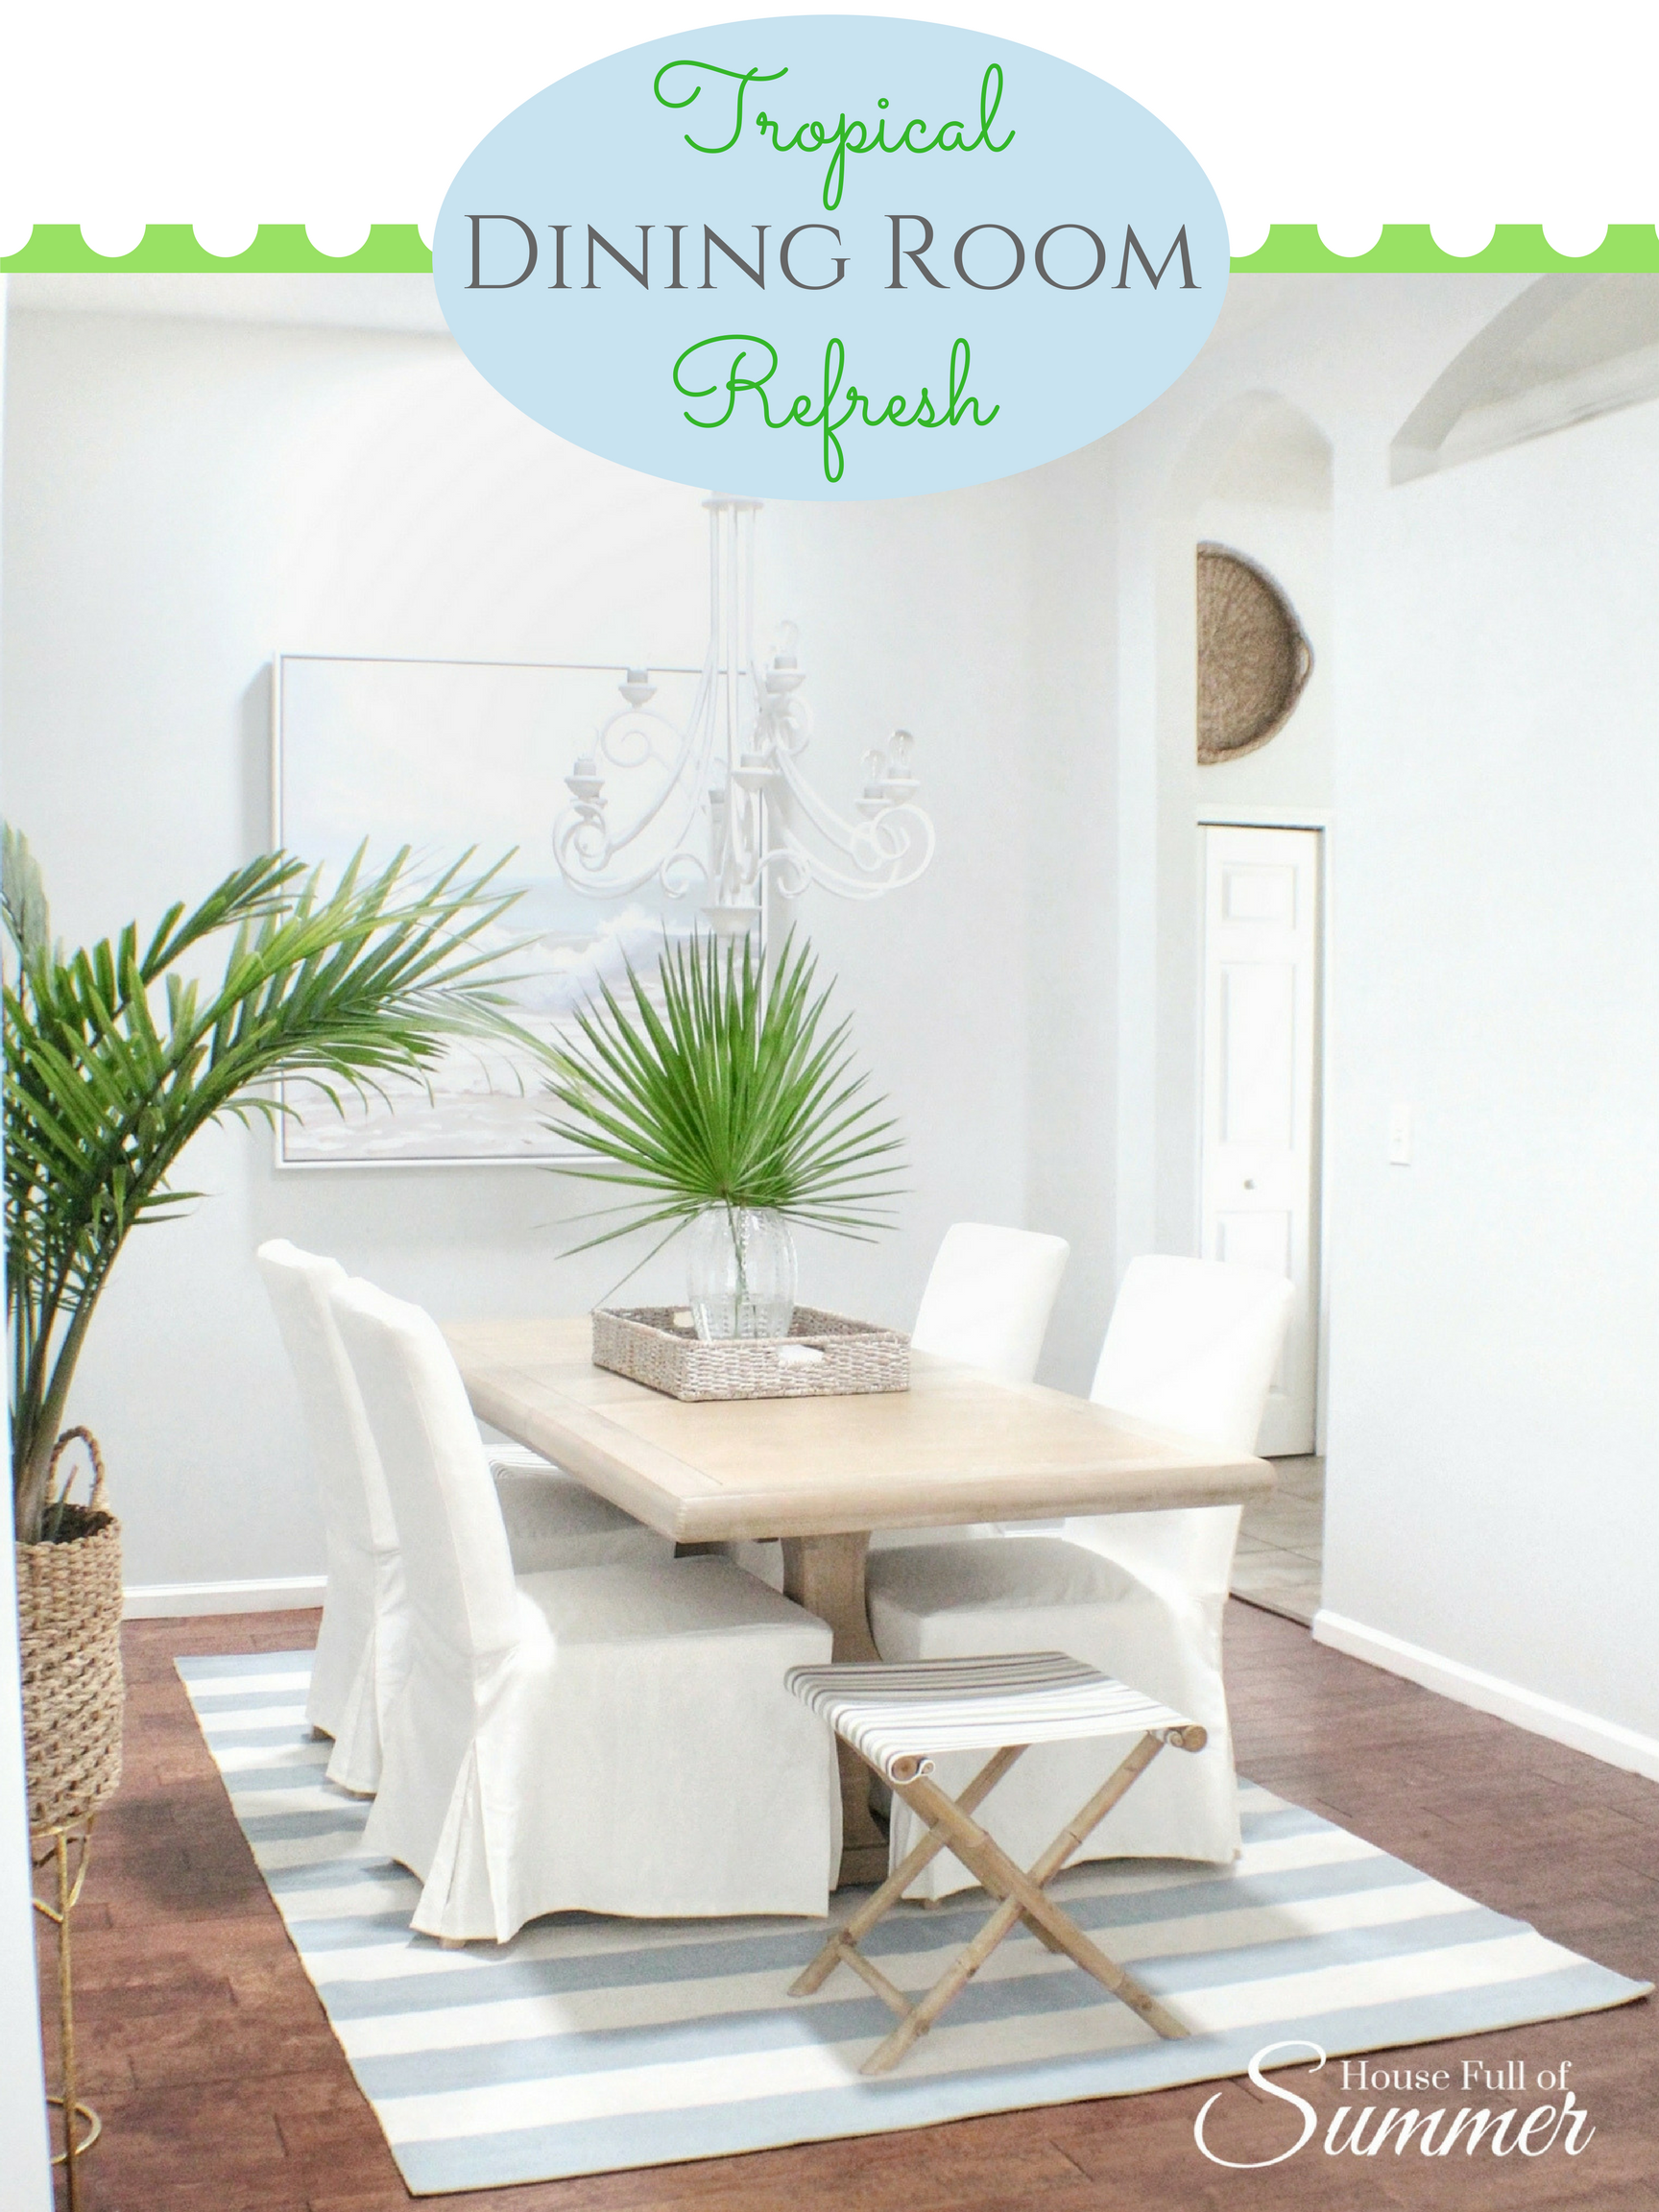 Tropical Dining Room Refresh (1).png